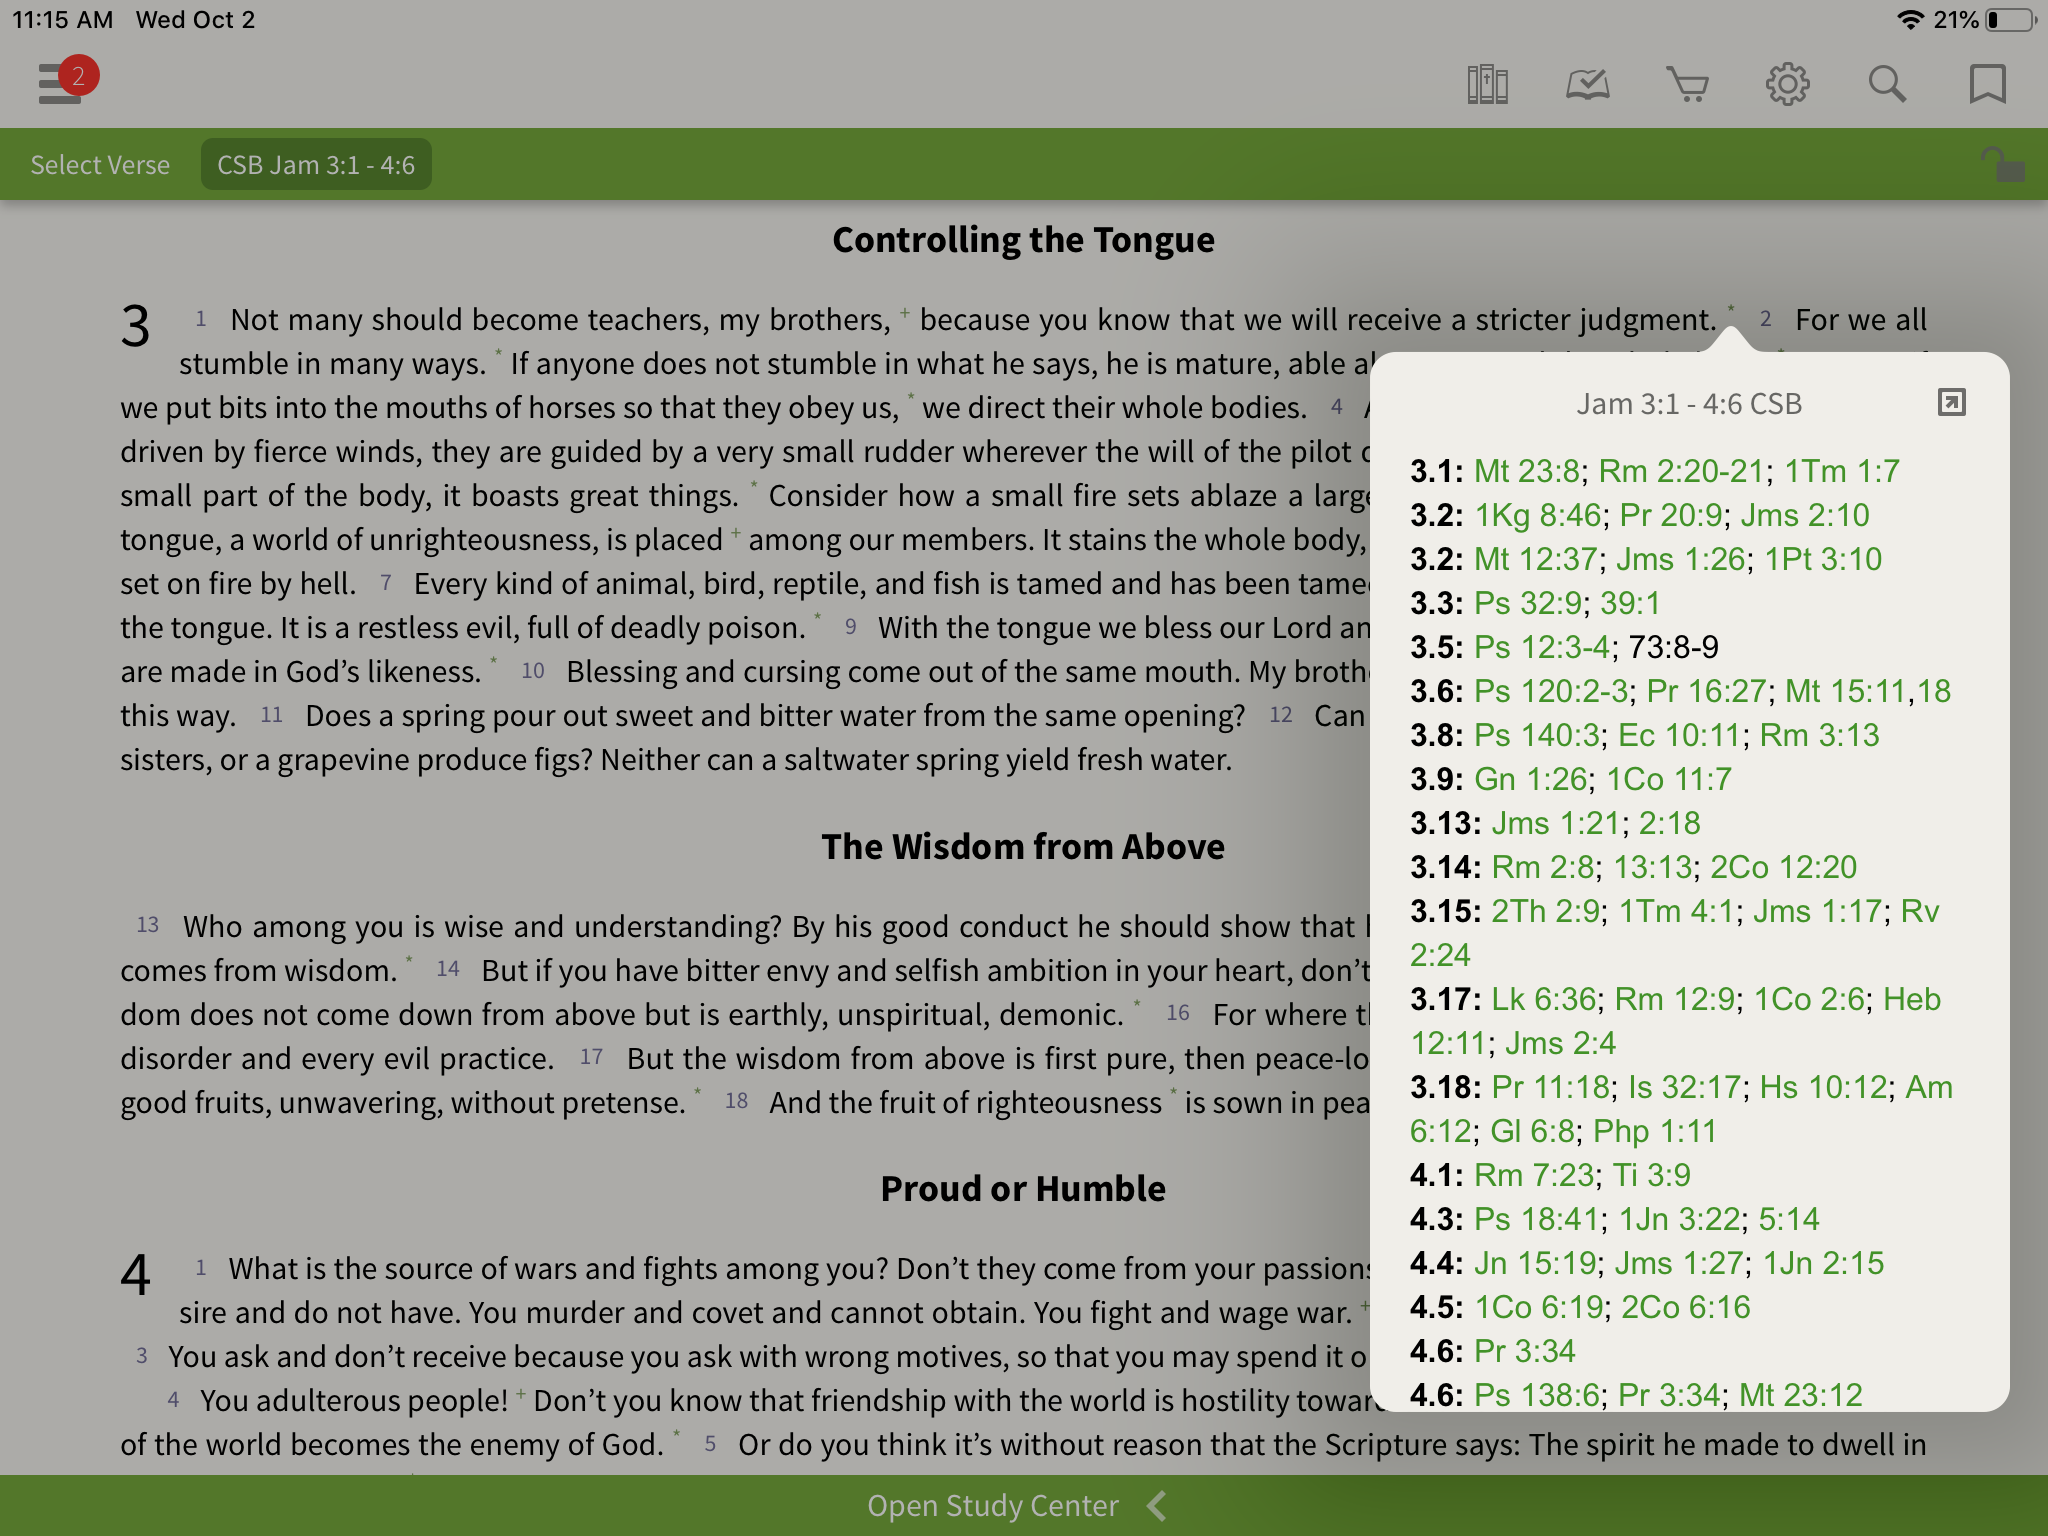 olive tree Bible cross references